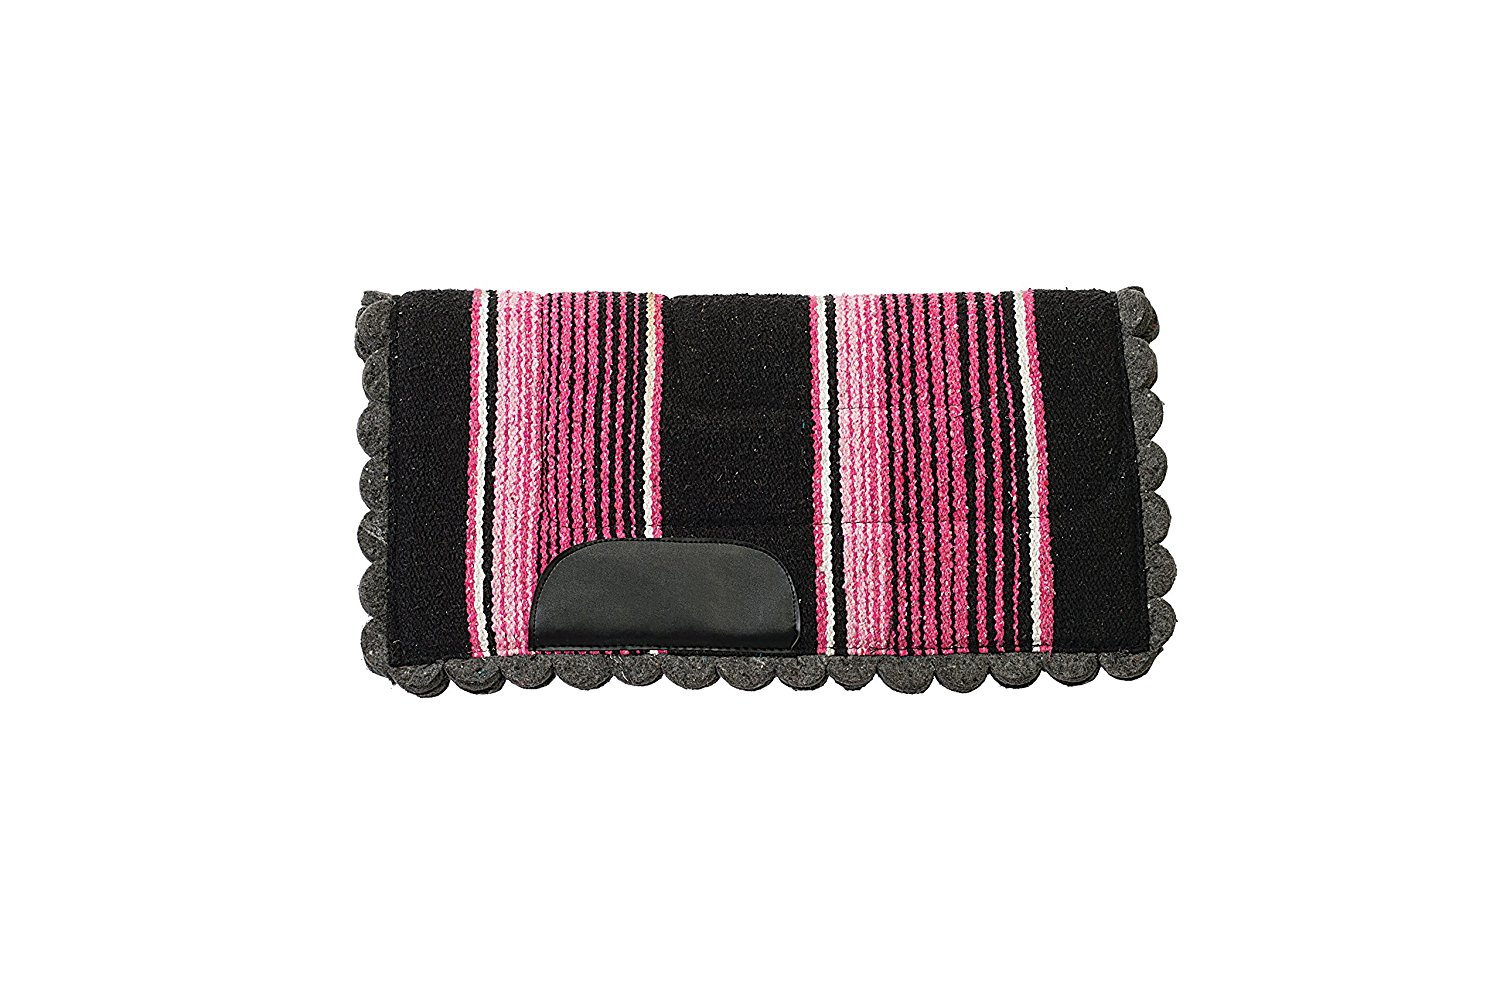 Weaver Leather Pony Felt Lined Navajo Saddle Pad